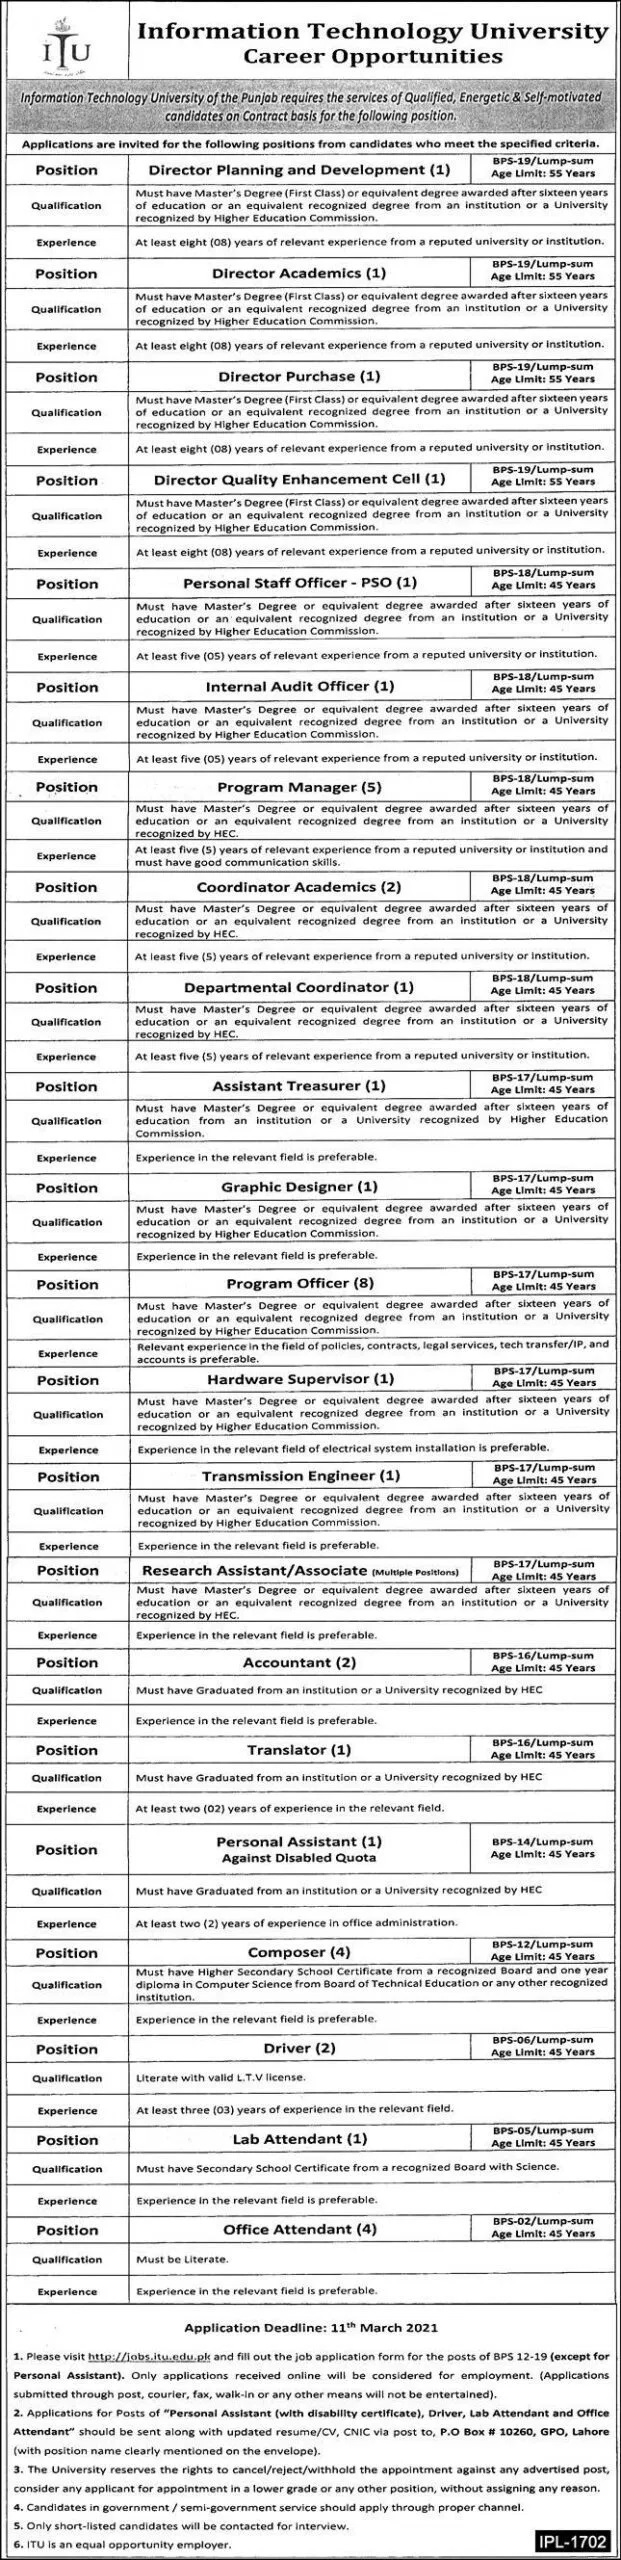 Information Technology University ITU Jobs Interview Schedule